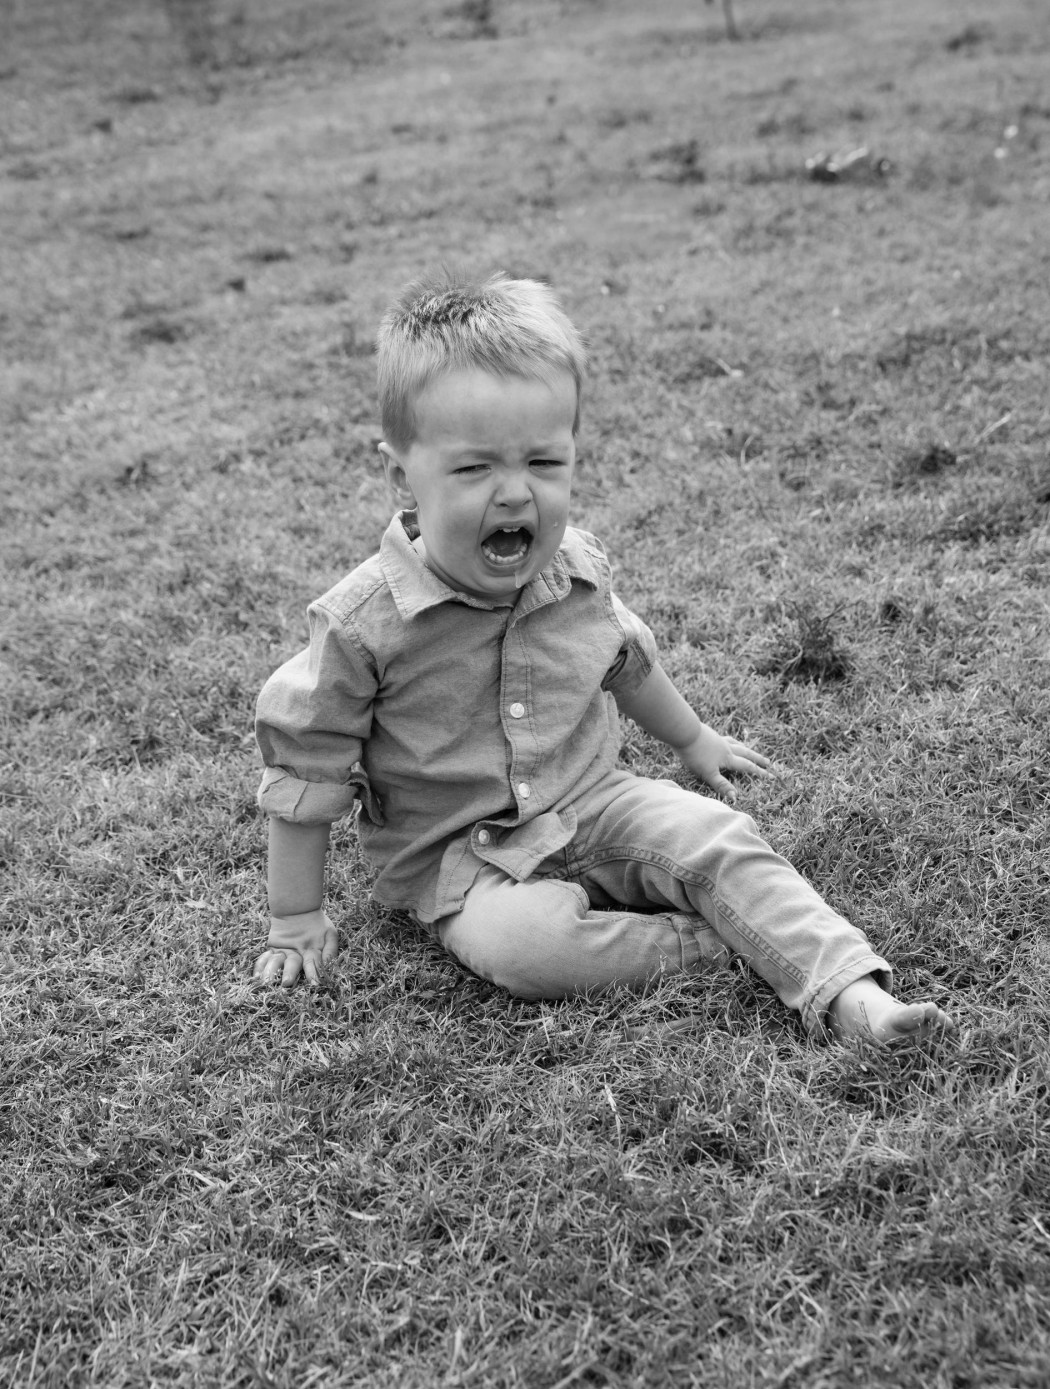 vertical orientation close up of a toddler boy sitting in a field of grass, having a tantrum, in black and white, with copy space / Toddler Tantrum